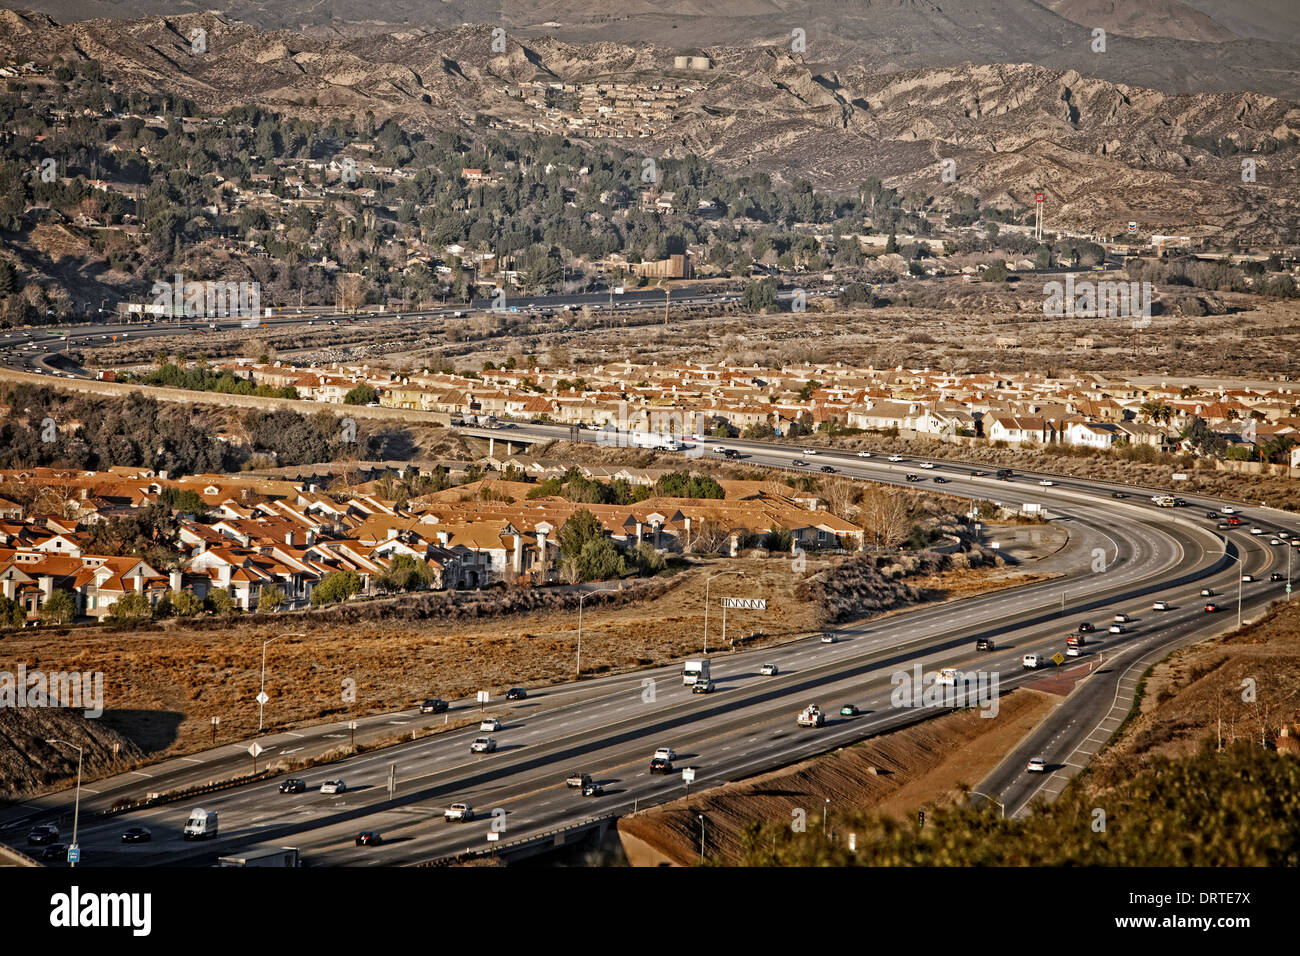 Una vista di Antelope Valley Freeway come serpenti attraverso Santa Clarita. Immagini Stock